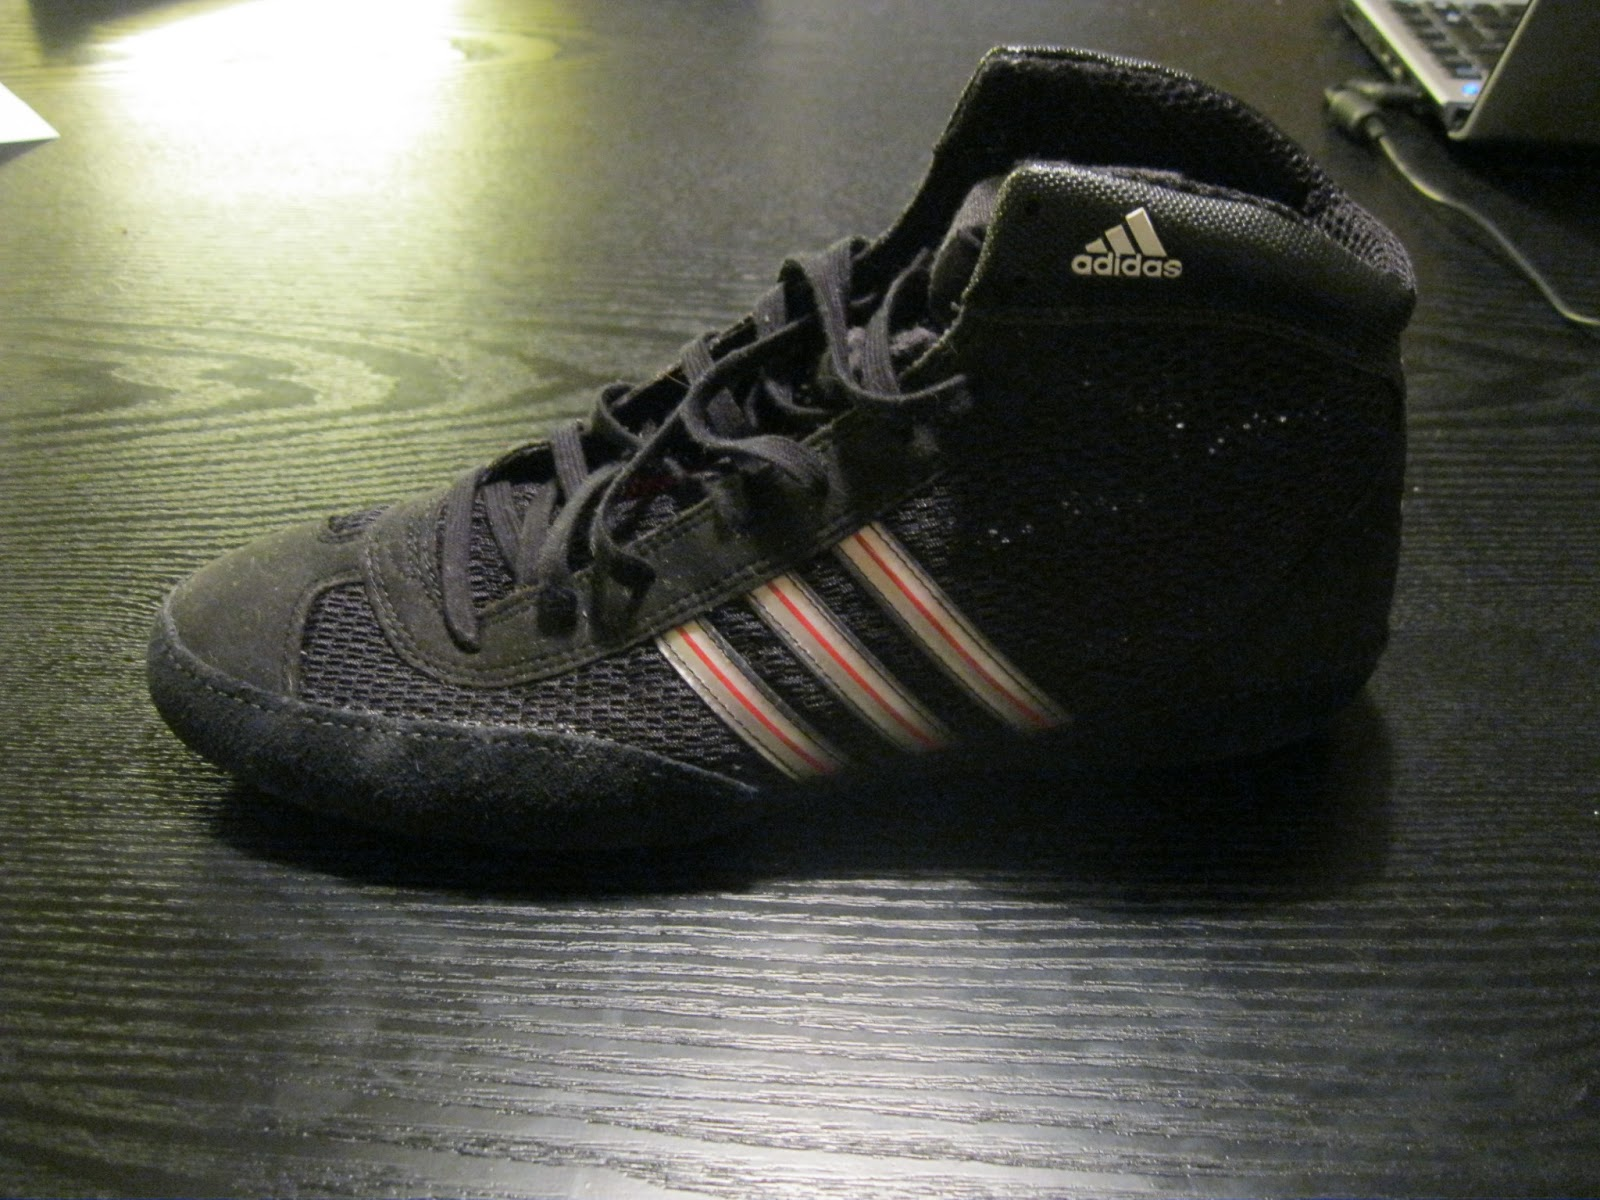 Web Jiu Jitsu: Gear Review: adidas Combat Speed 3 zapatos de lucha